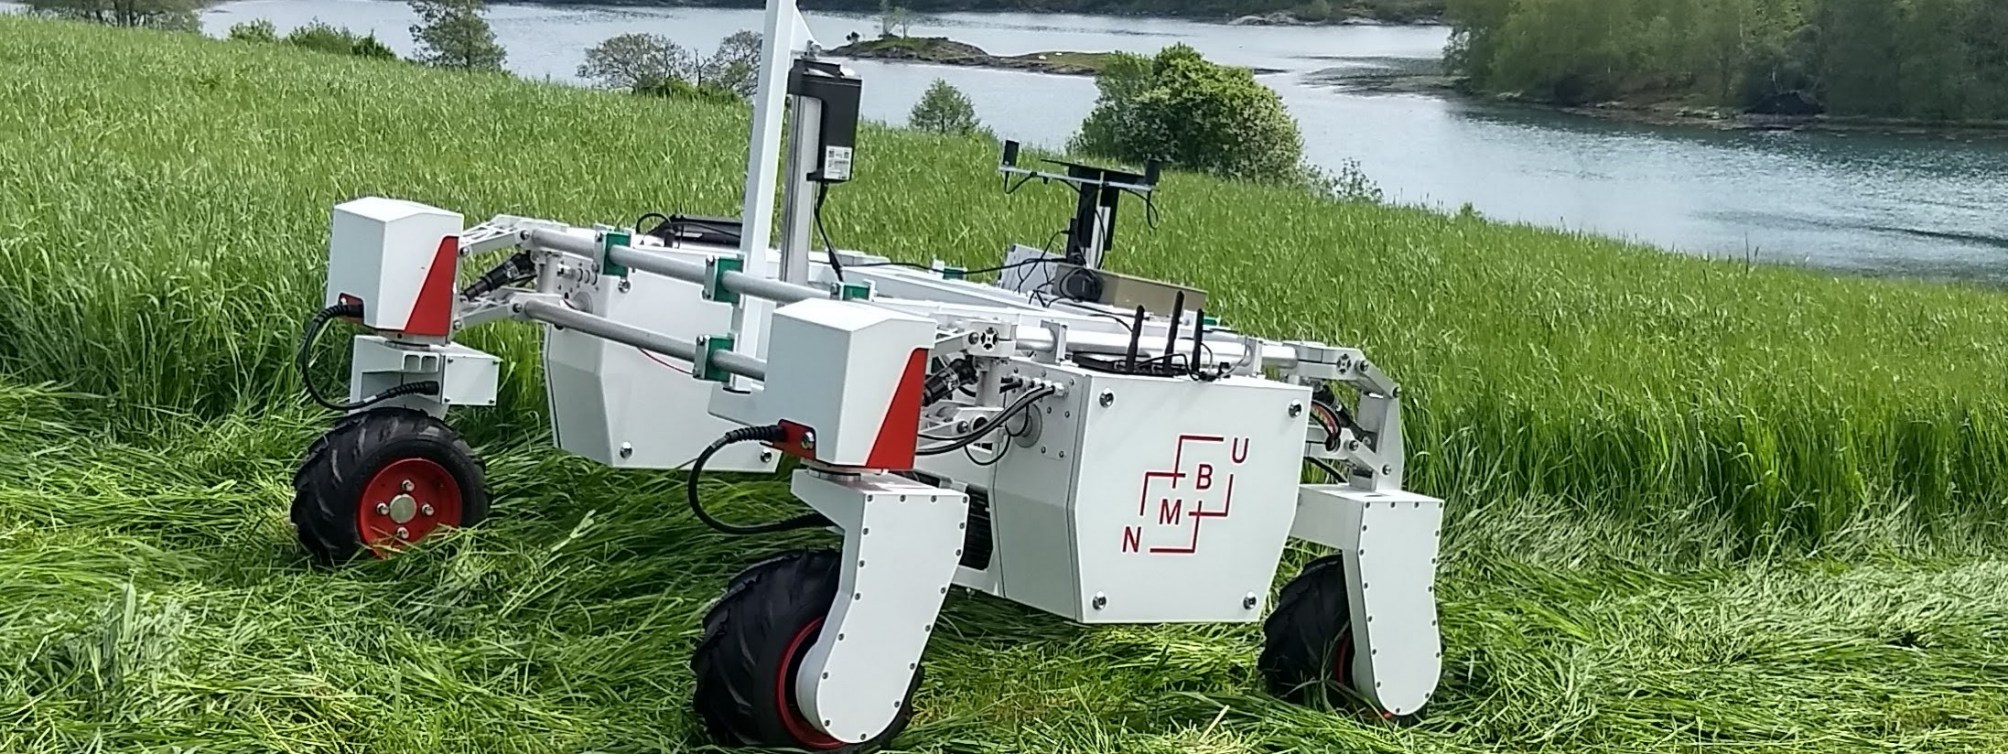 GrassRobotics - A novel adaptation strategy for forage production under wet growing conditions - robotization and high quality forages